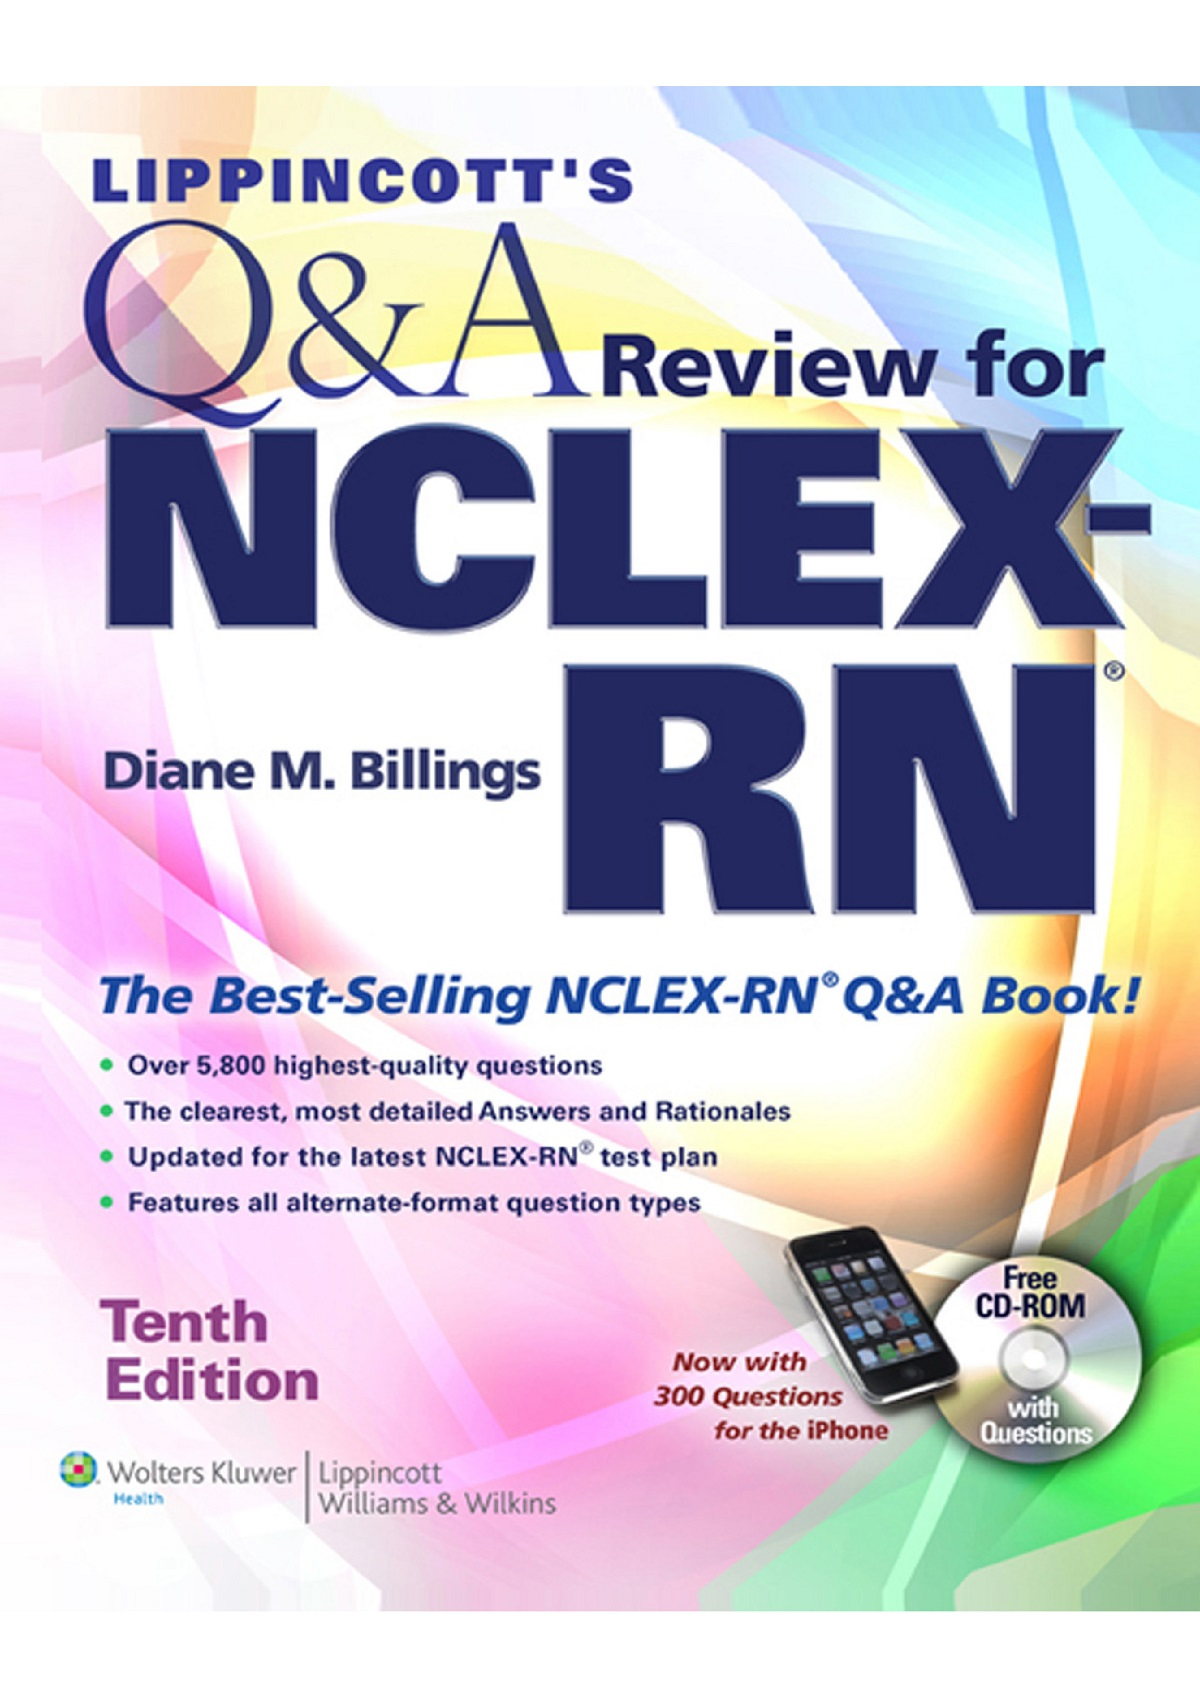 Lippincott's Q&A Review for   NCLEX-RN TENTH EDITION